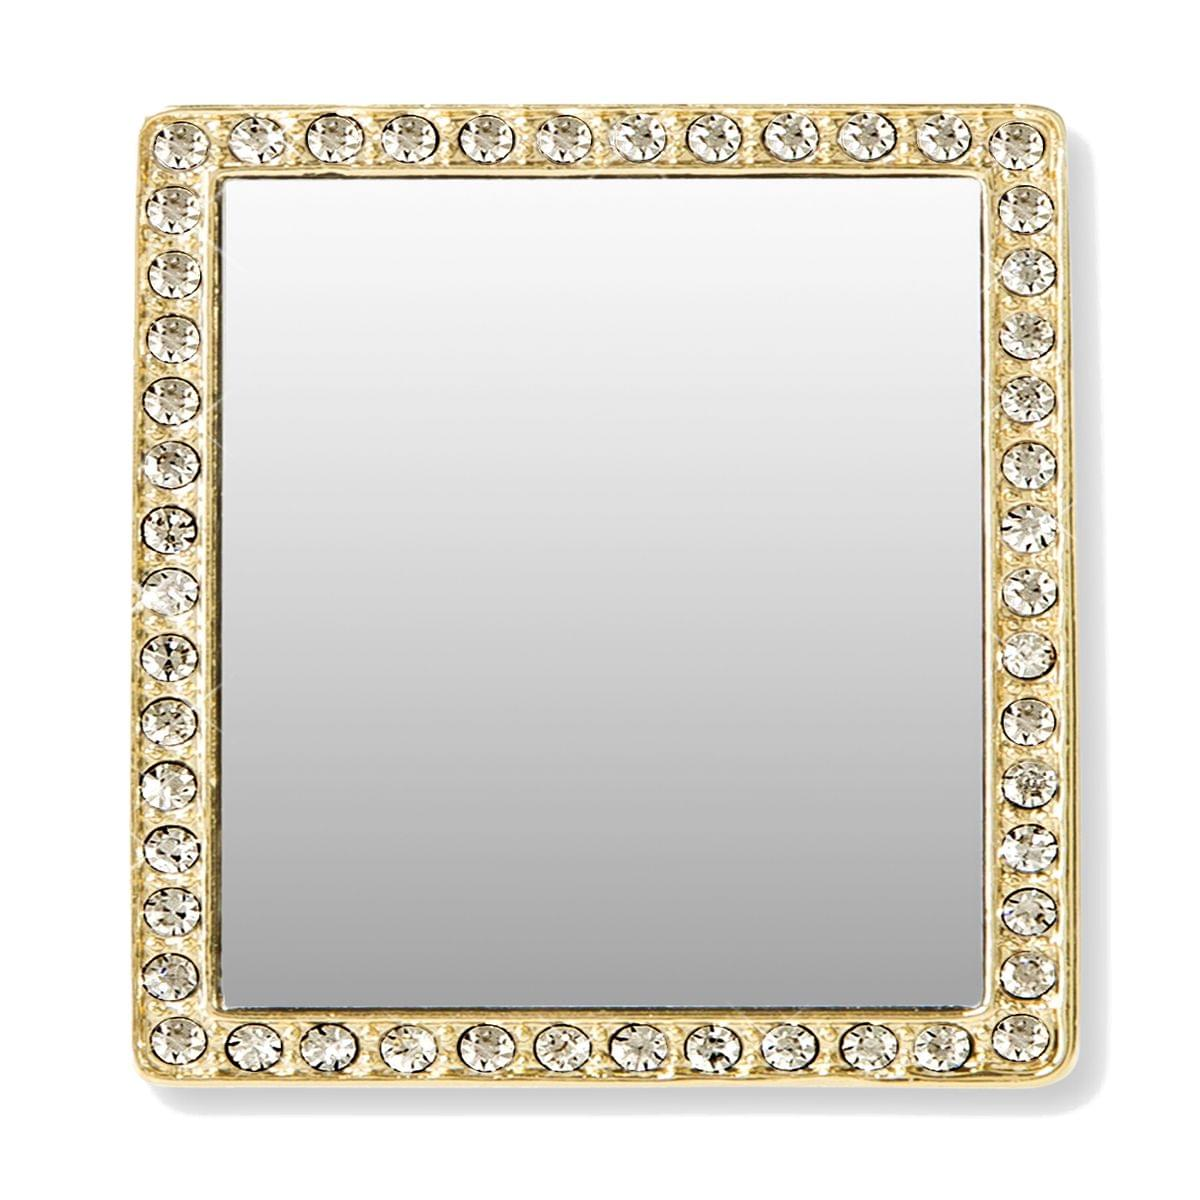 Idecoz Phone Mirror Gold Square W Crystals Free Shipping Toynk Toys